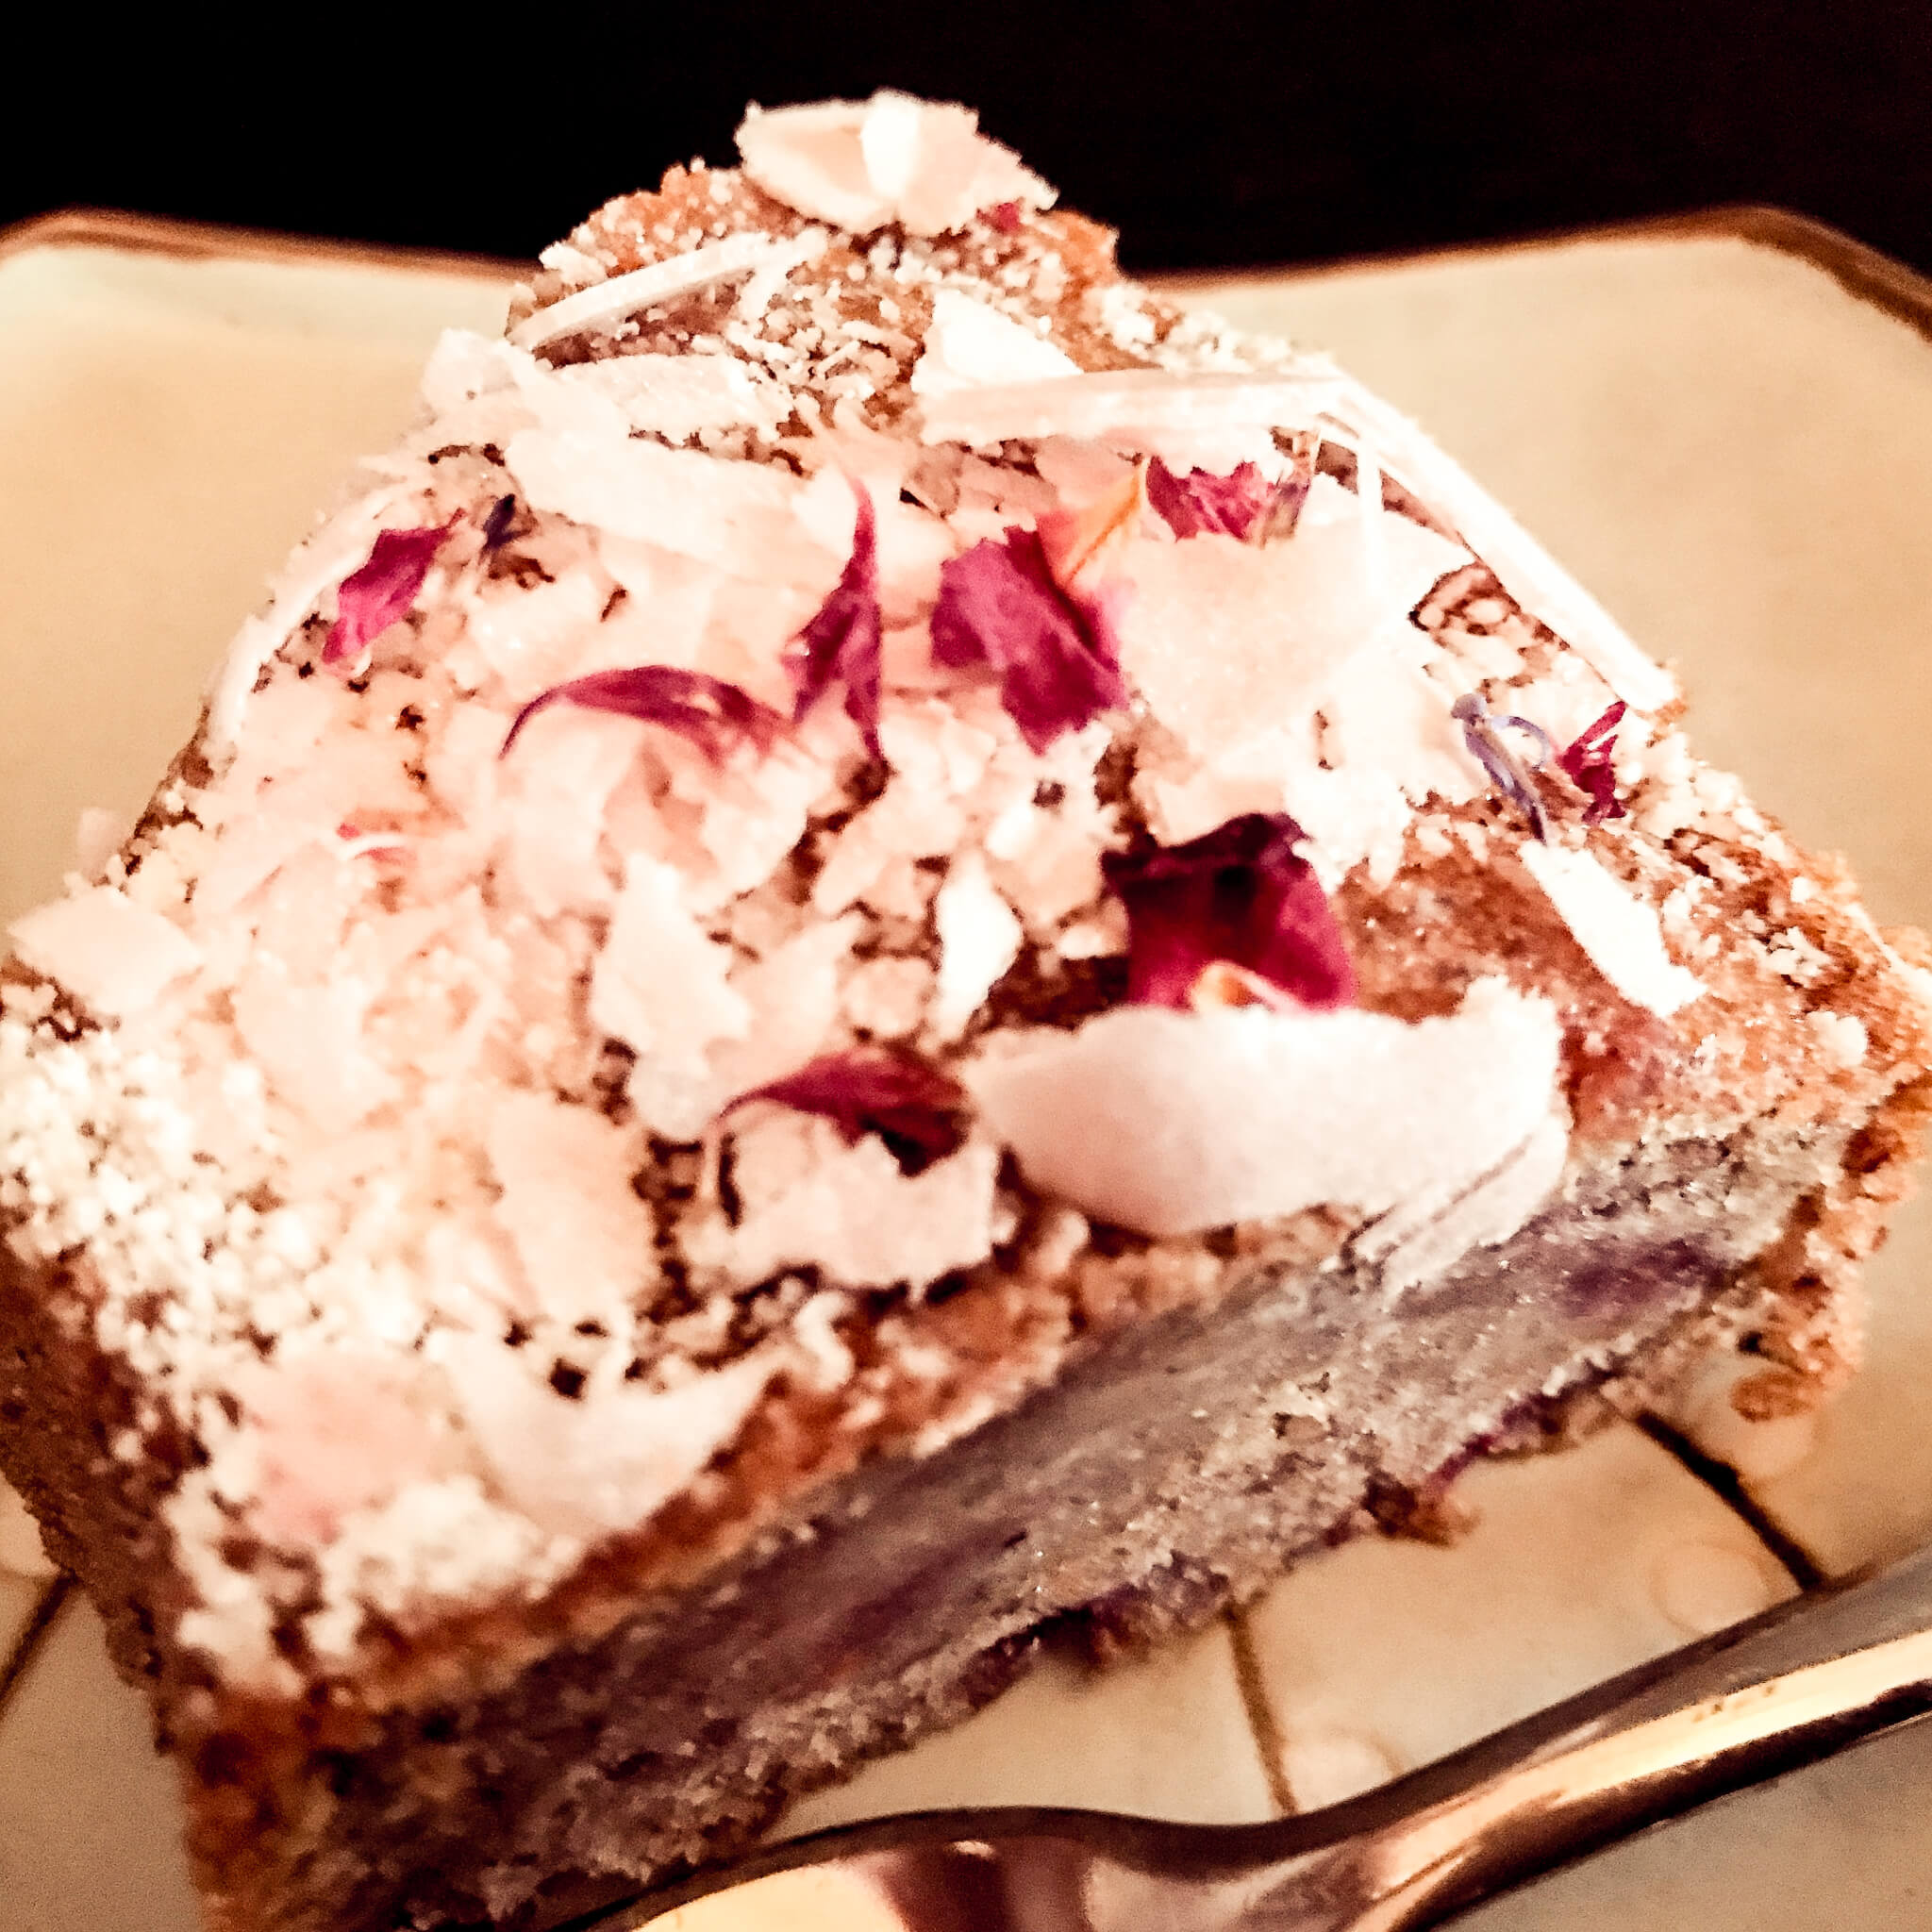 BANANA-RASPBERRY-CAKE WITH WHITE CHOCOLATE